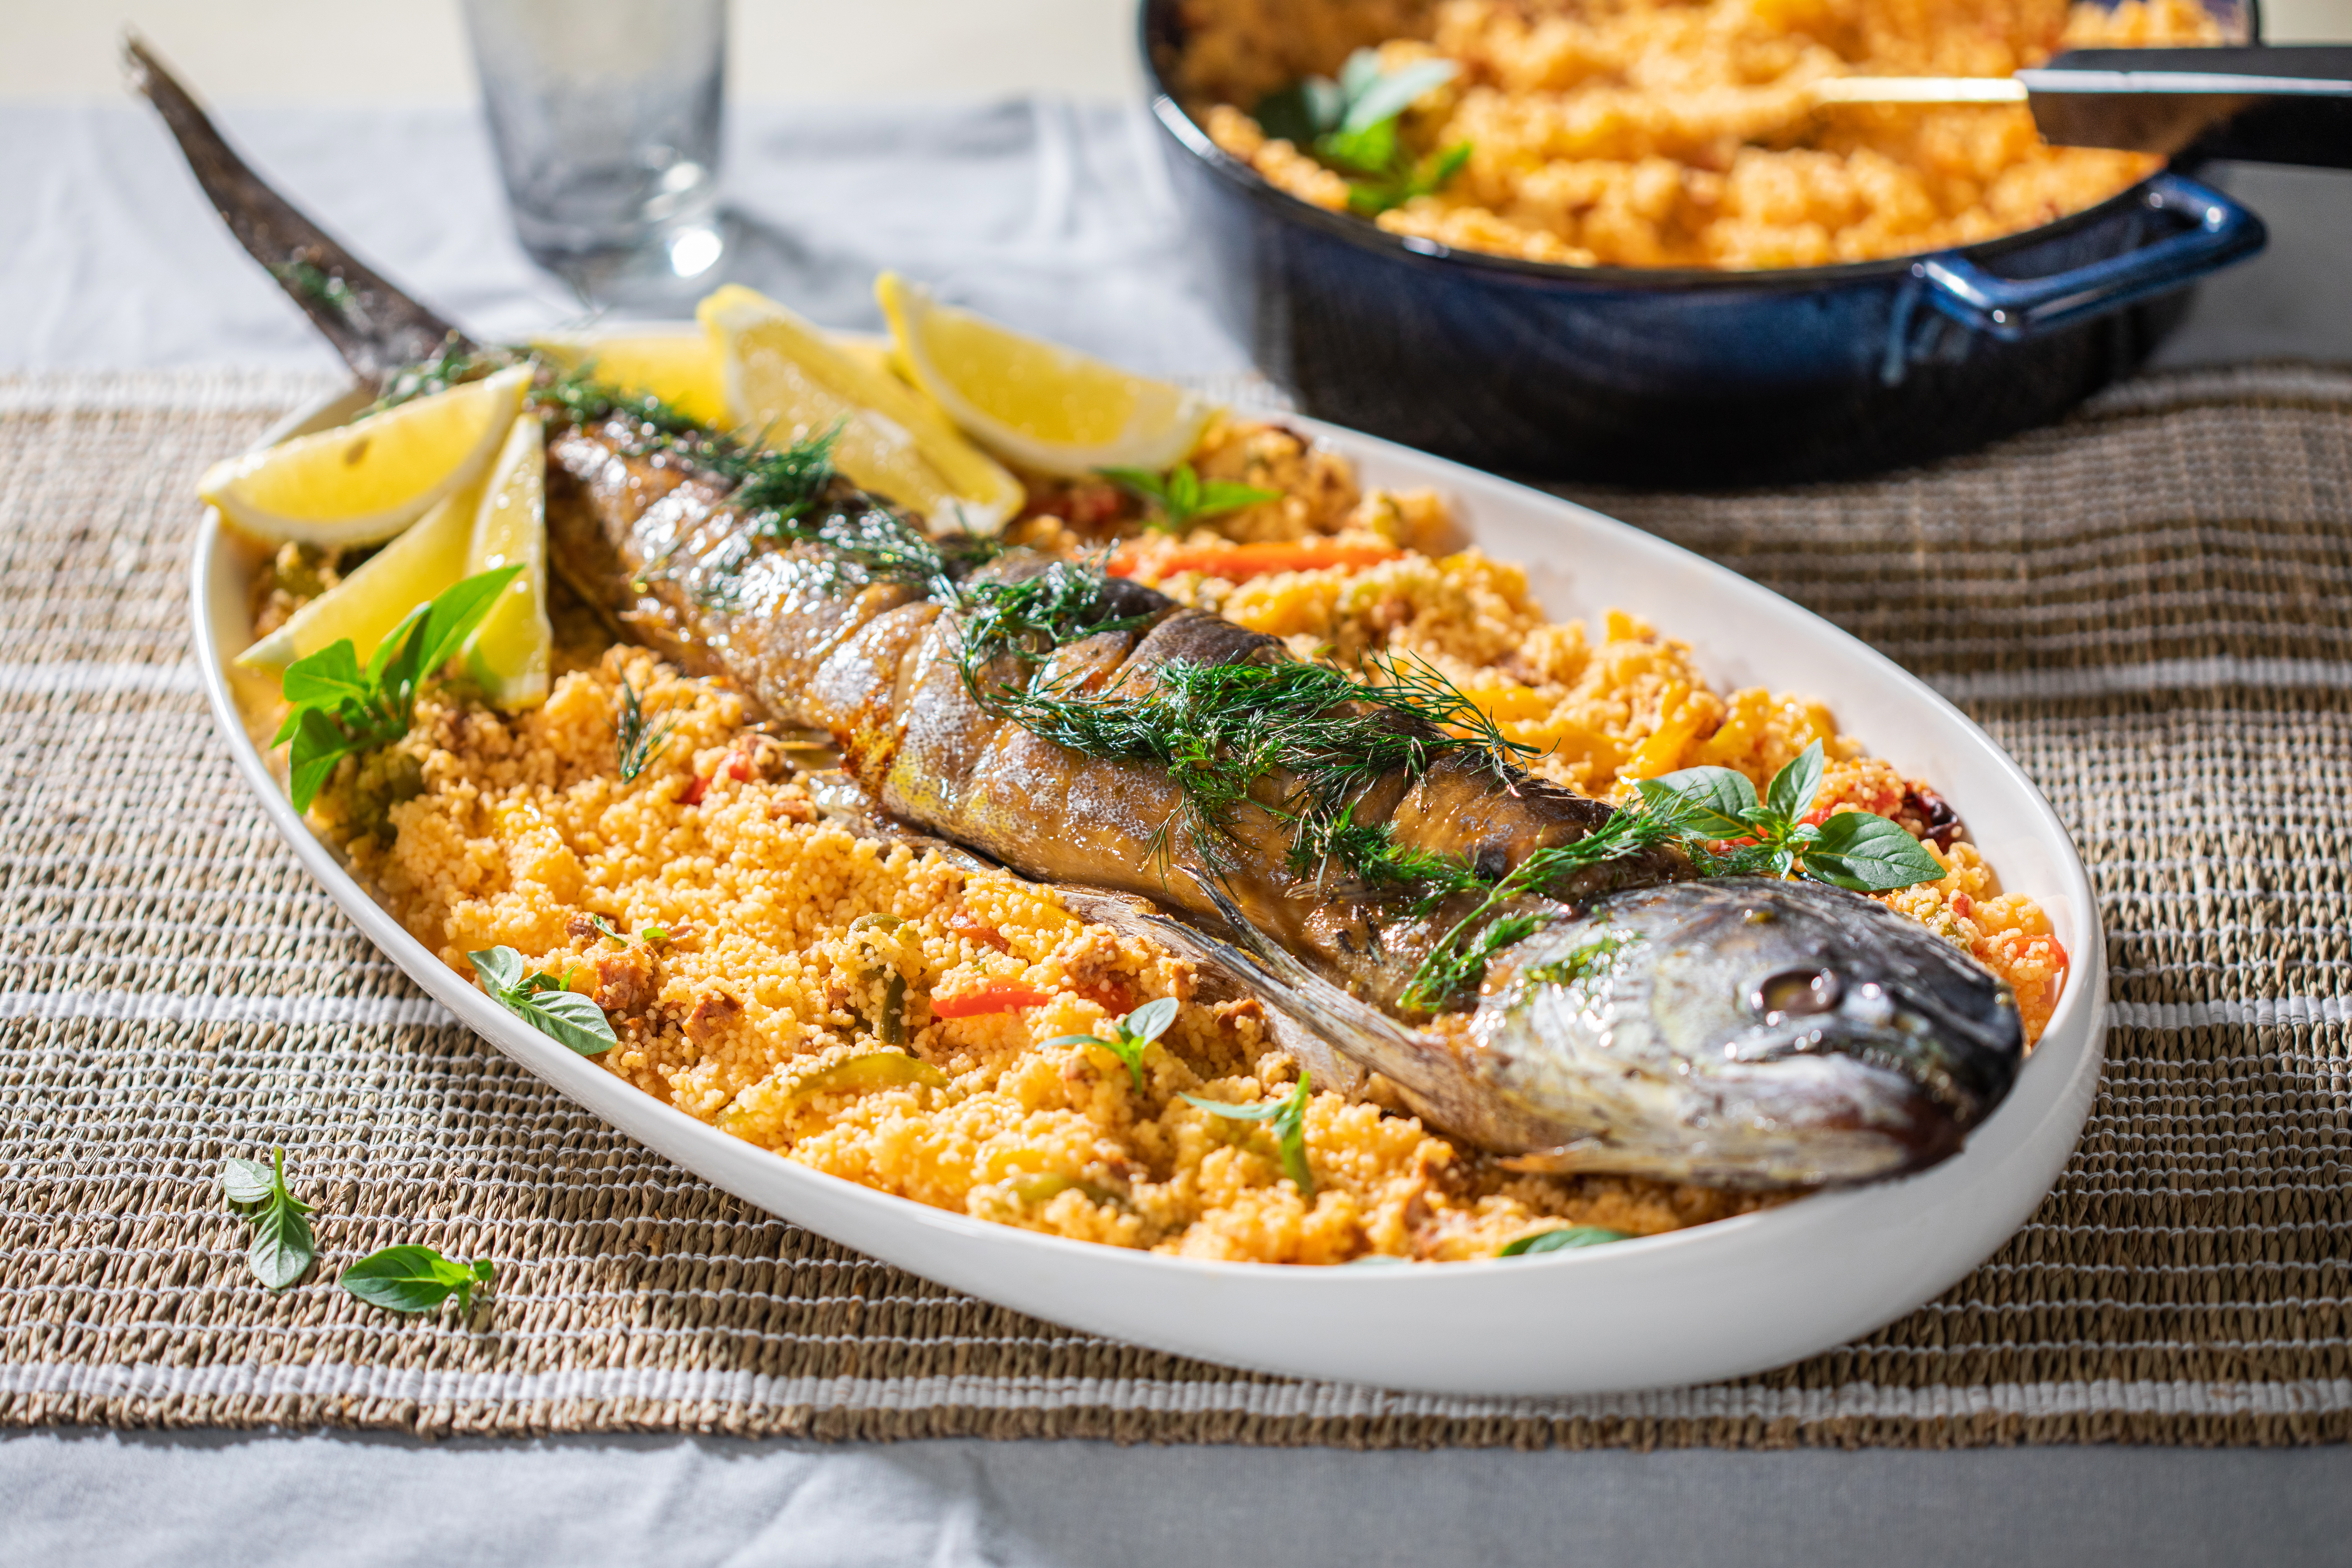 Lorna's Whole Fish Stuffed with Couscous, Chorizo & Peppers